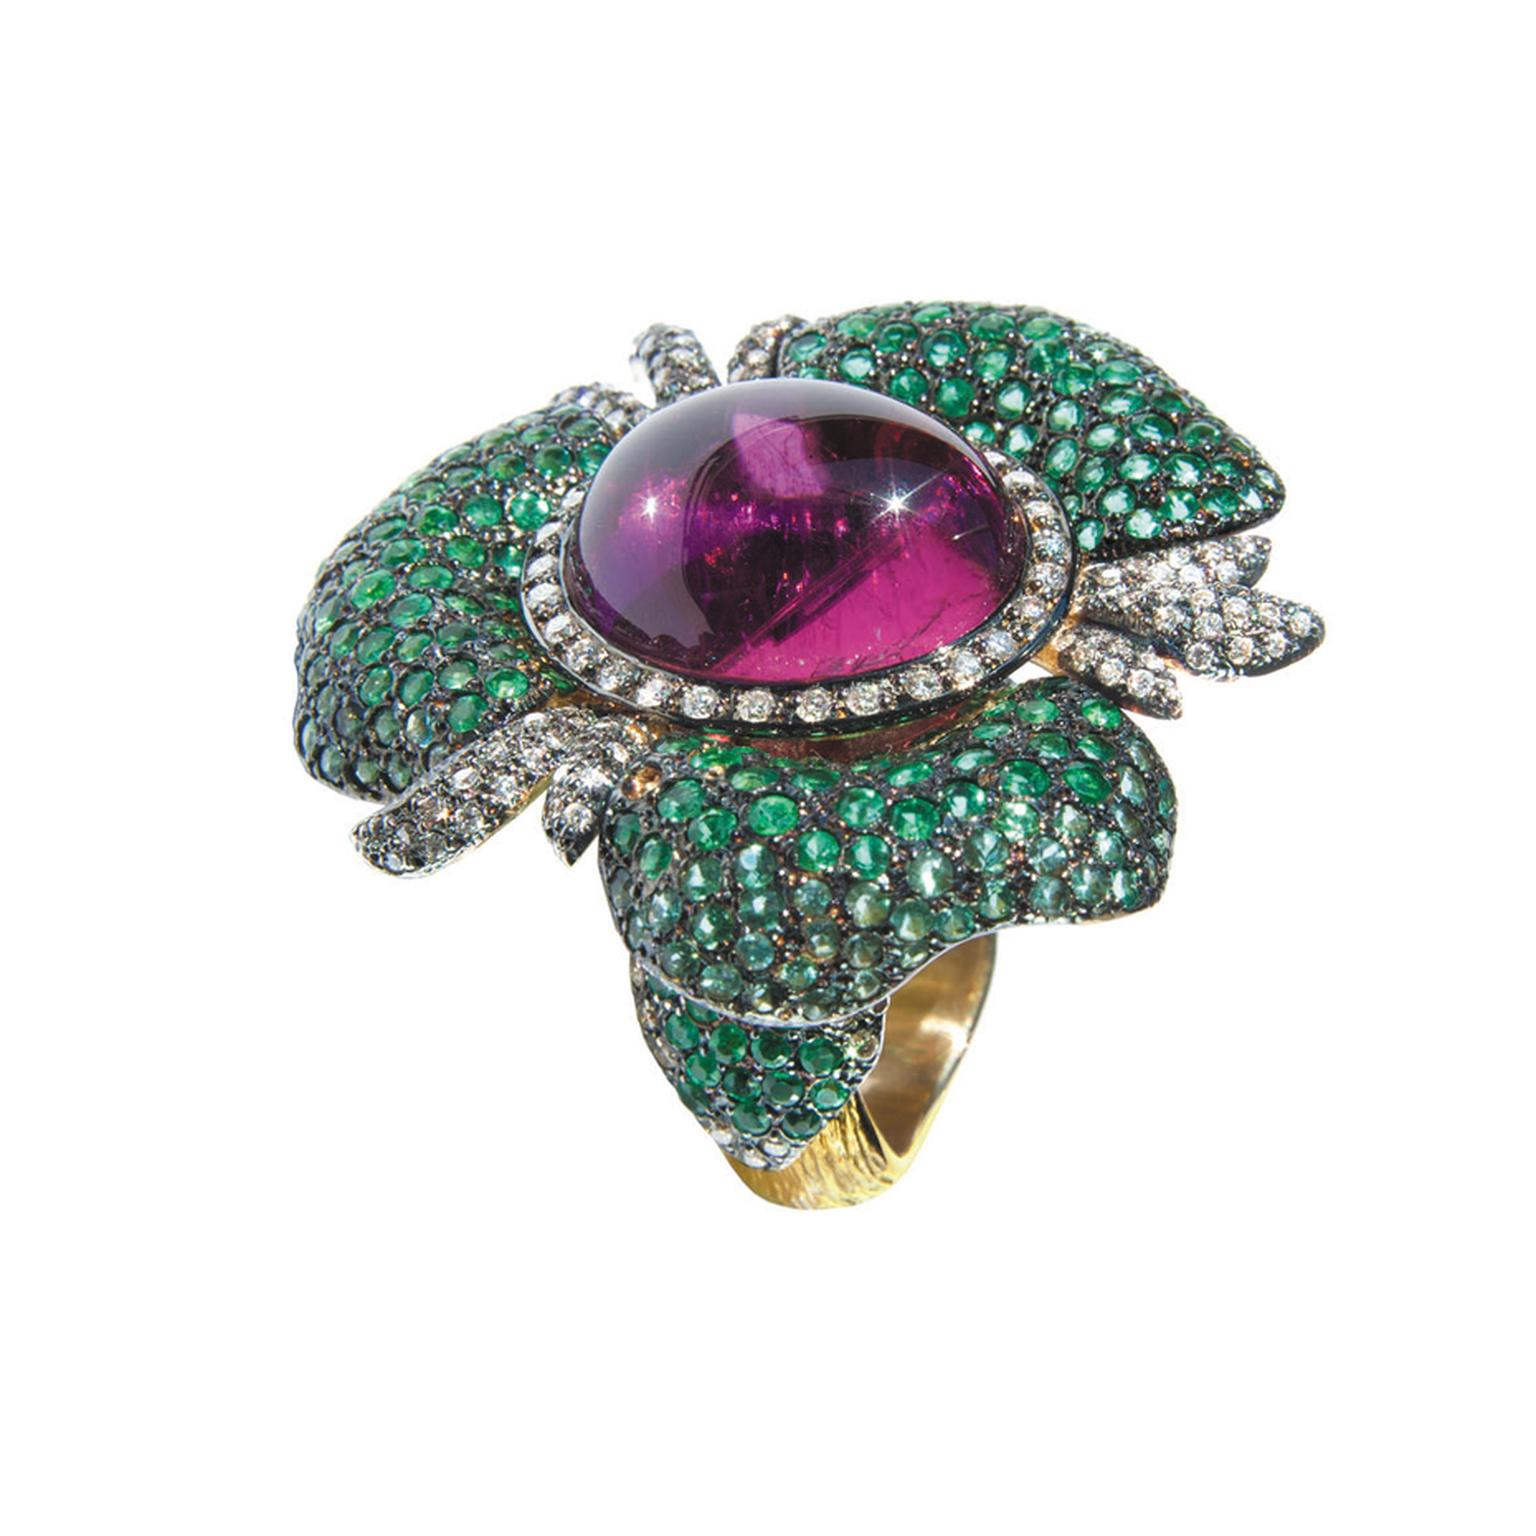 Cleison Roche's Orchid ring with emerald petals, Paraiba tourmalines, diamonds and a central rubellite.